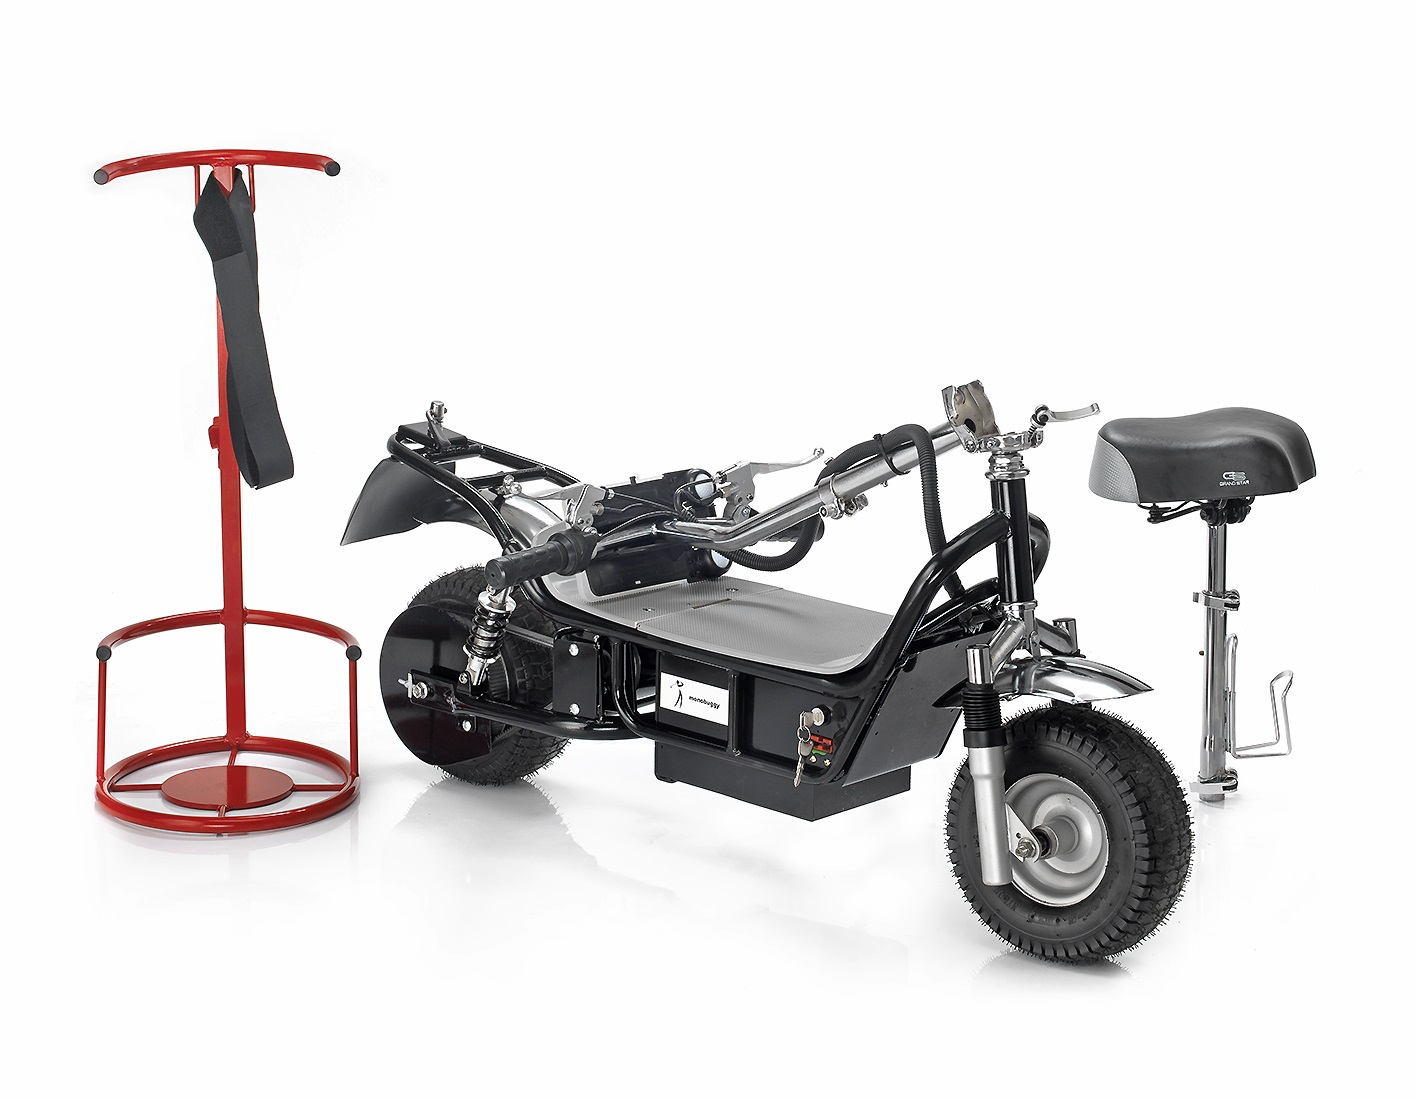 Scooter folded with Rack and Seat-tube seperate